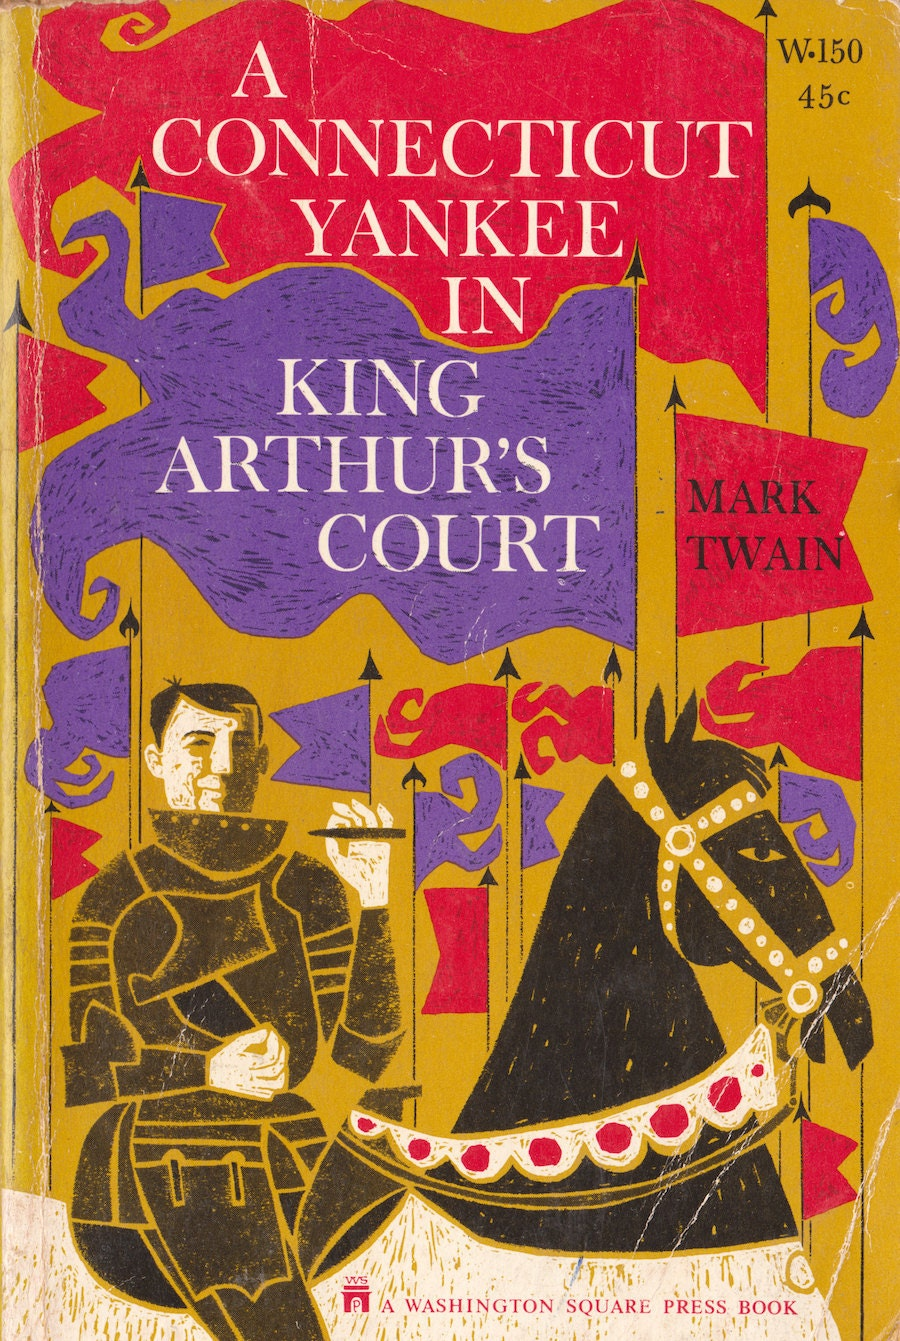 thesis for a connecticut yankee in king arthurs court